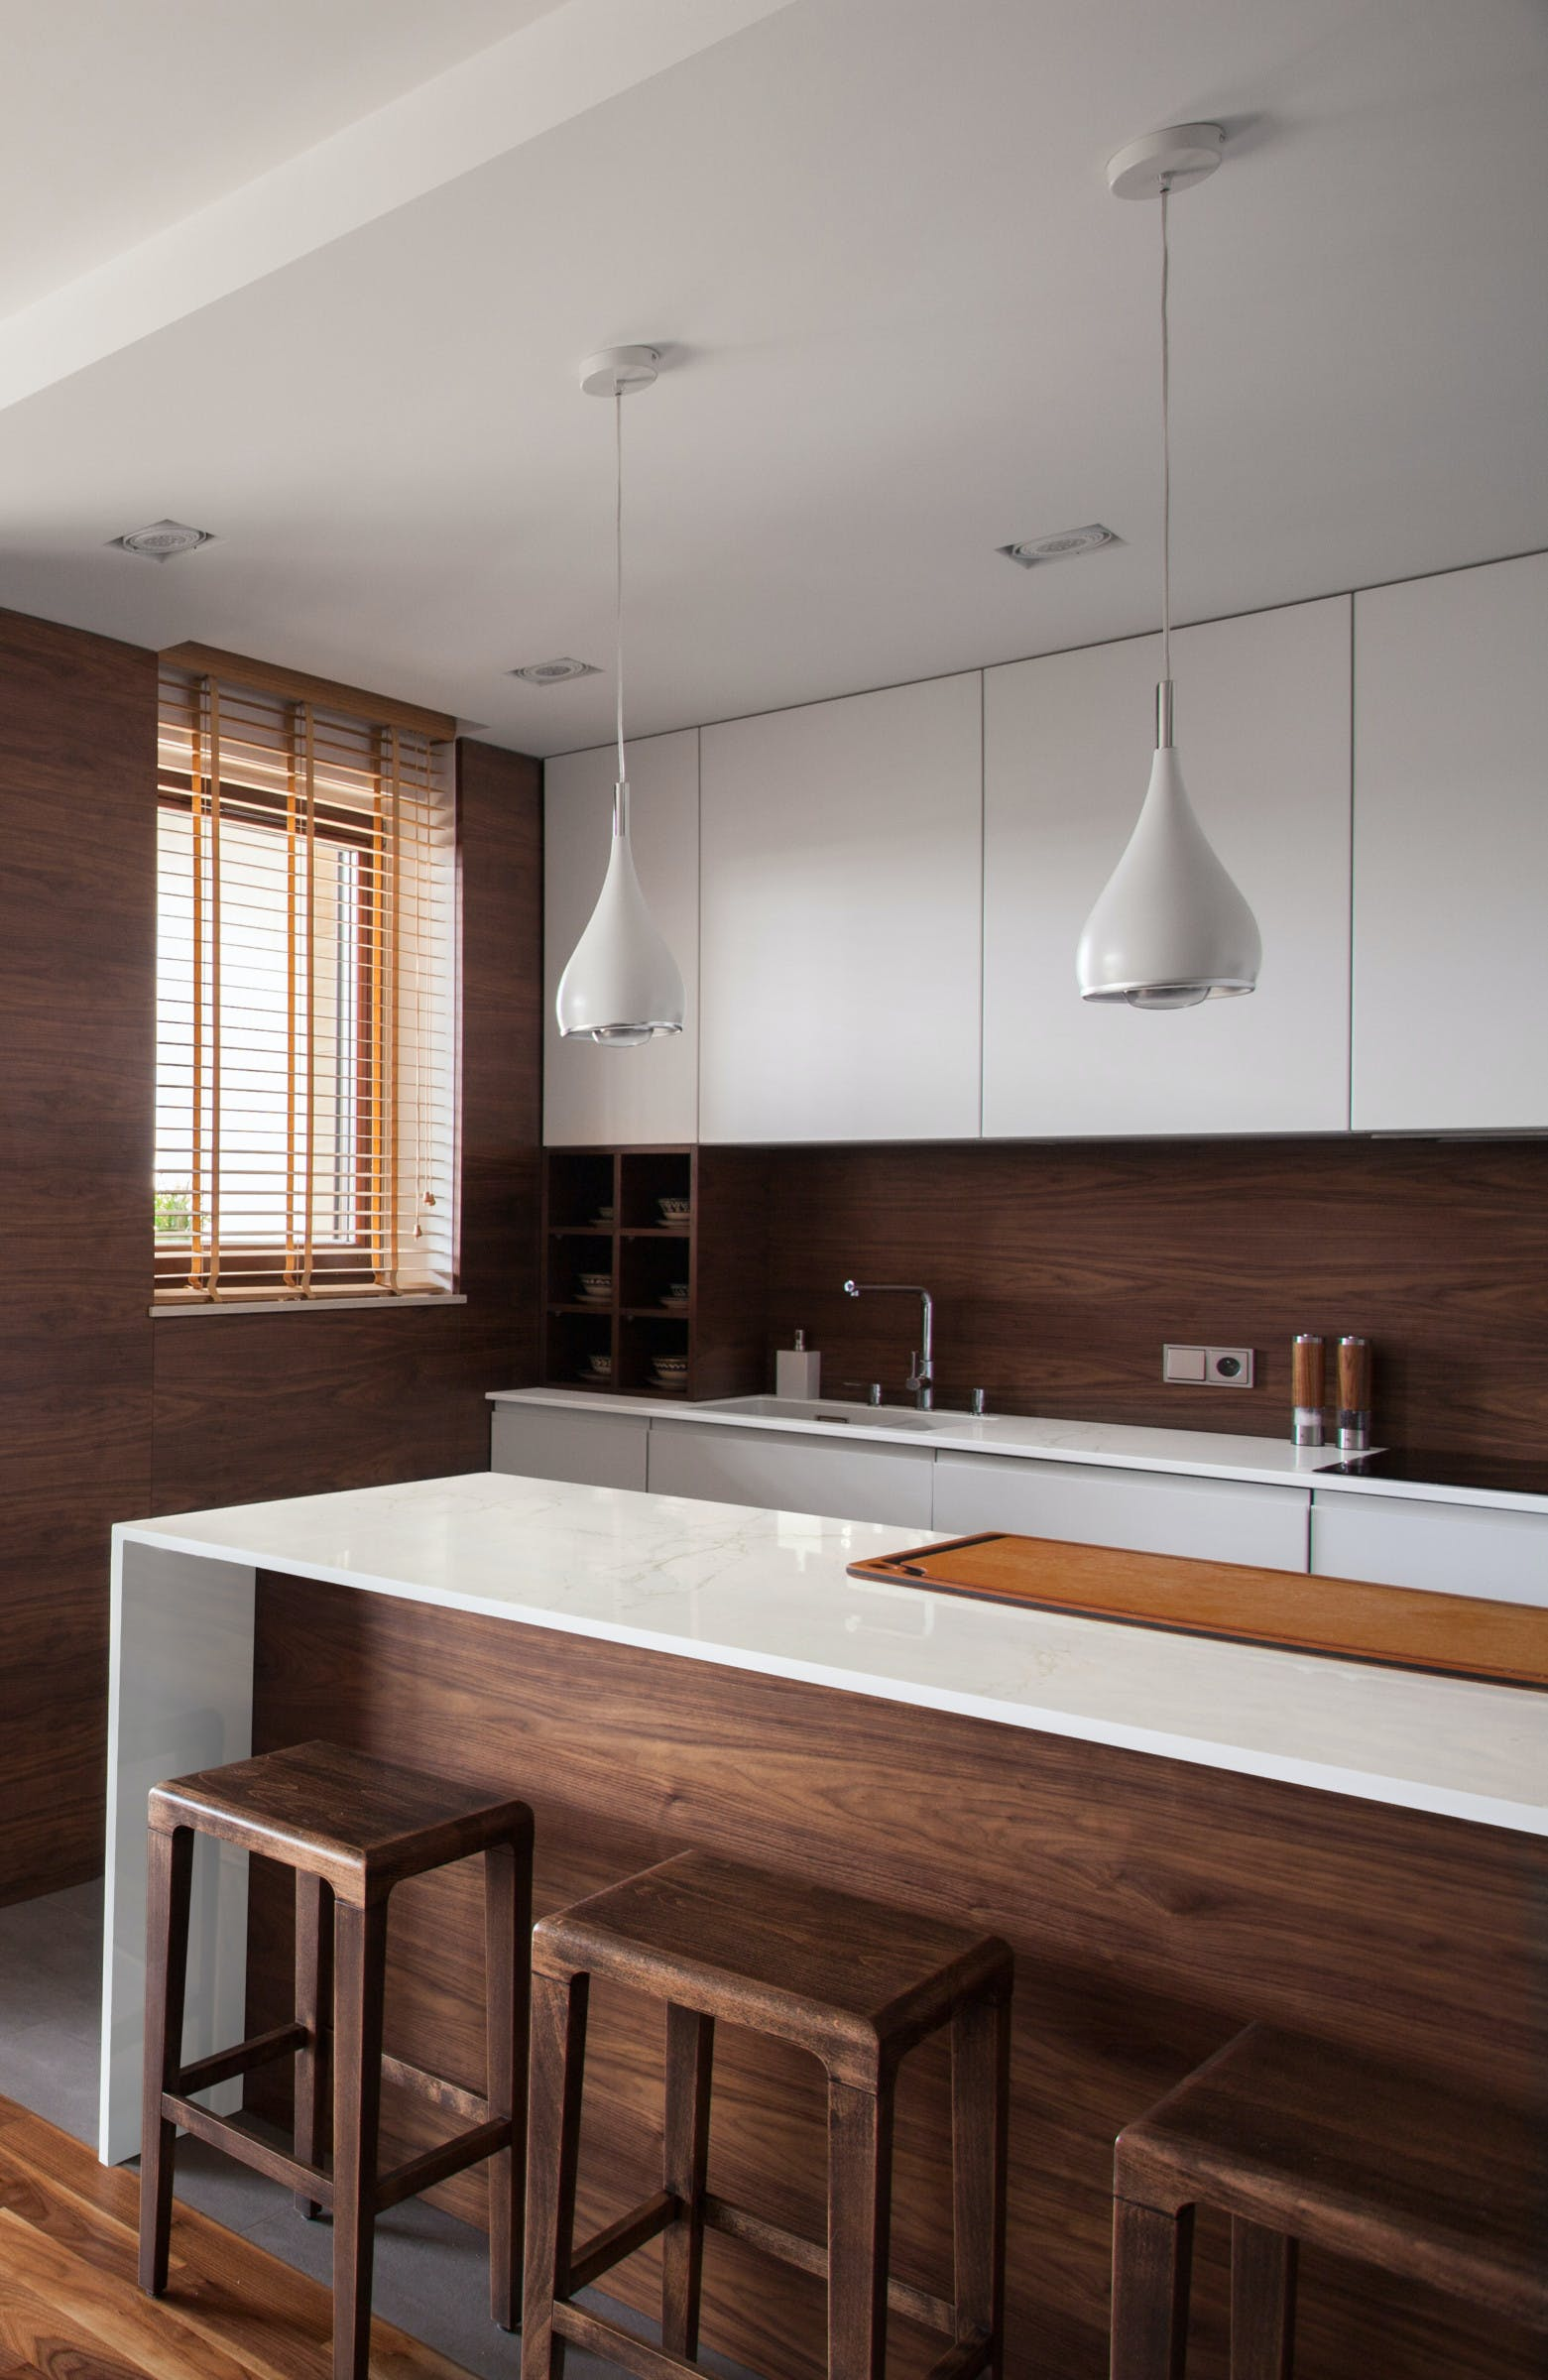 Image of rs11171 dekton kitchen glacier 1 in Compact kitchens: Who says they're a disadvantage? - Cosentino